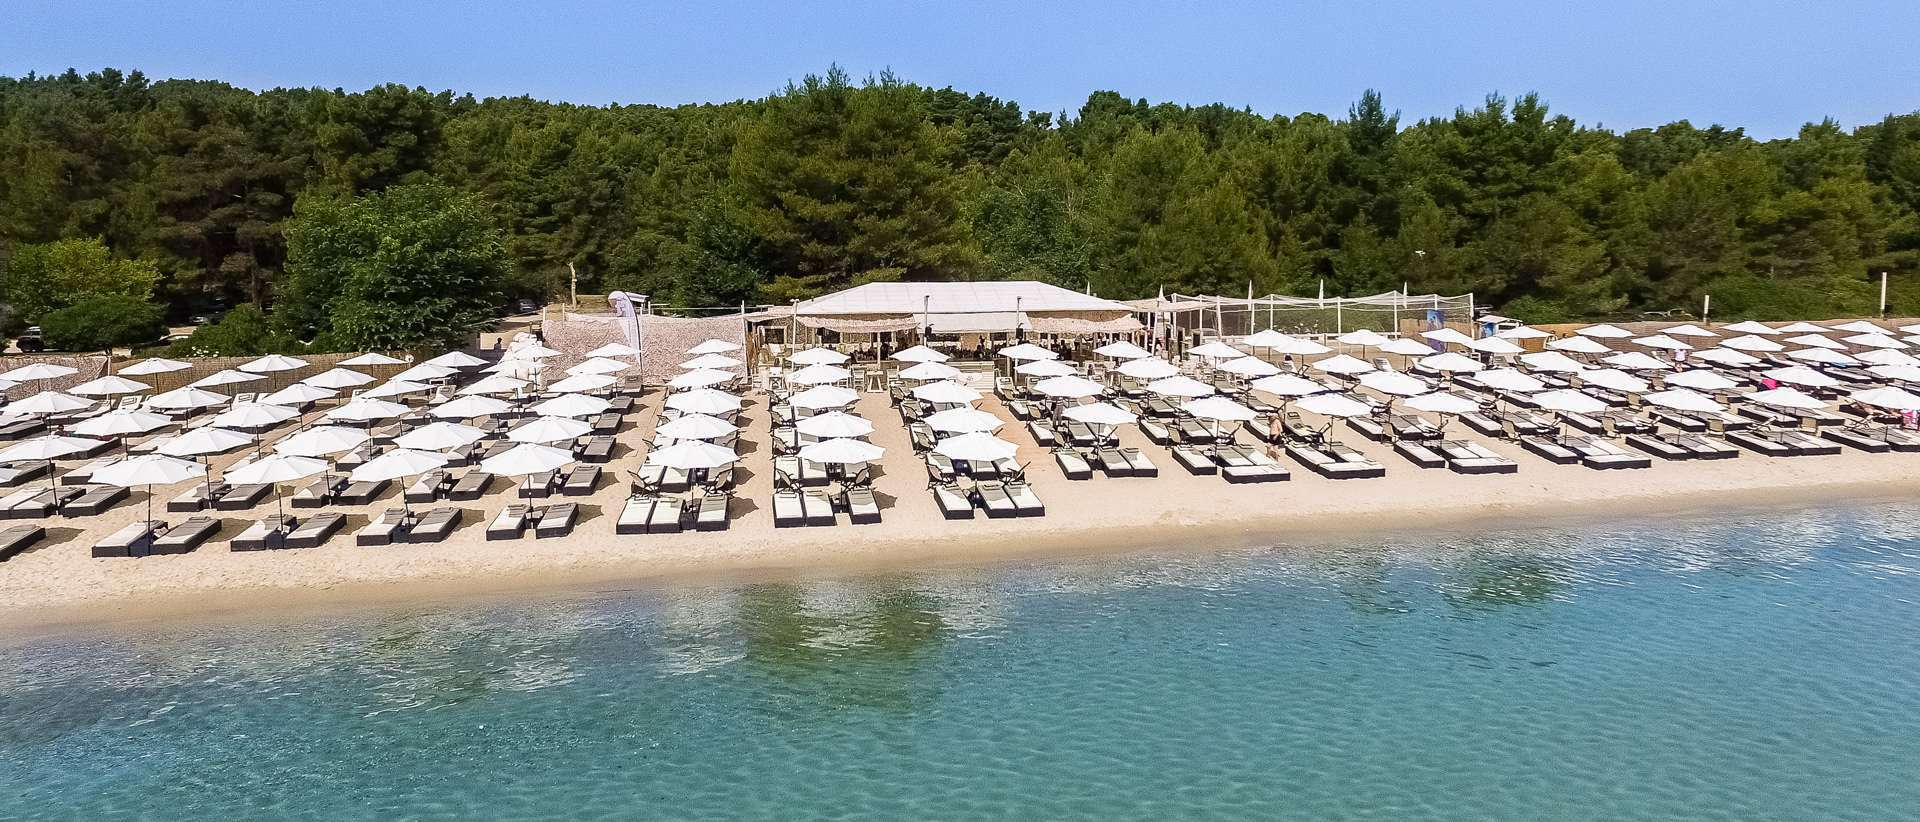 Cabana beach is the must destination for Chalkidiki.